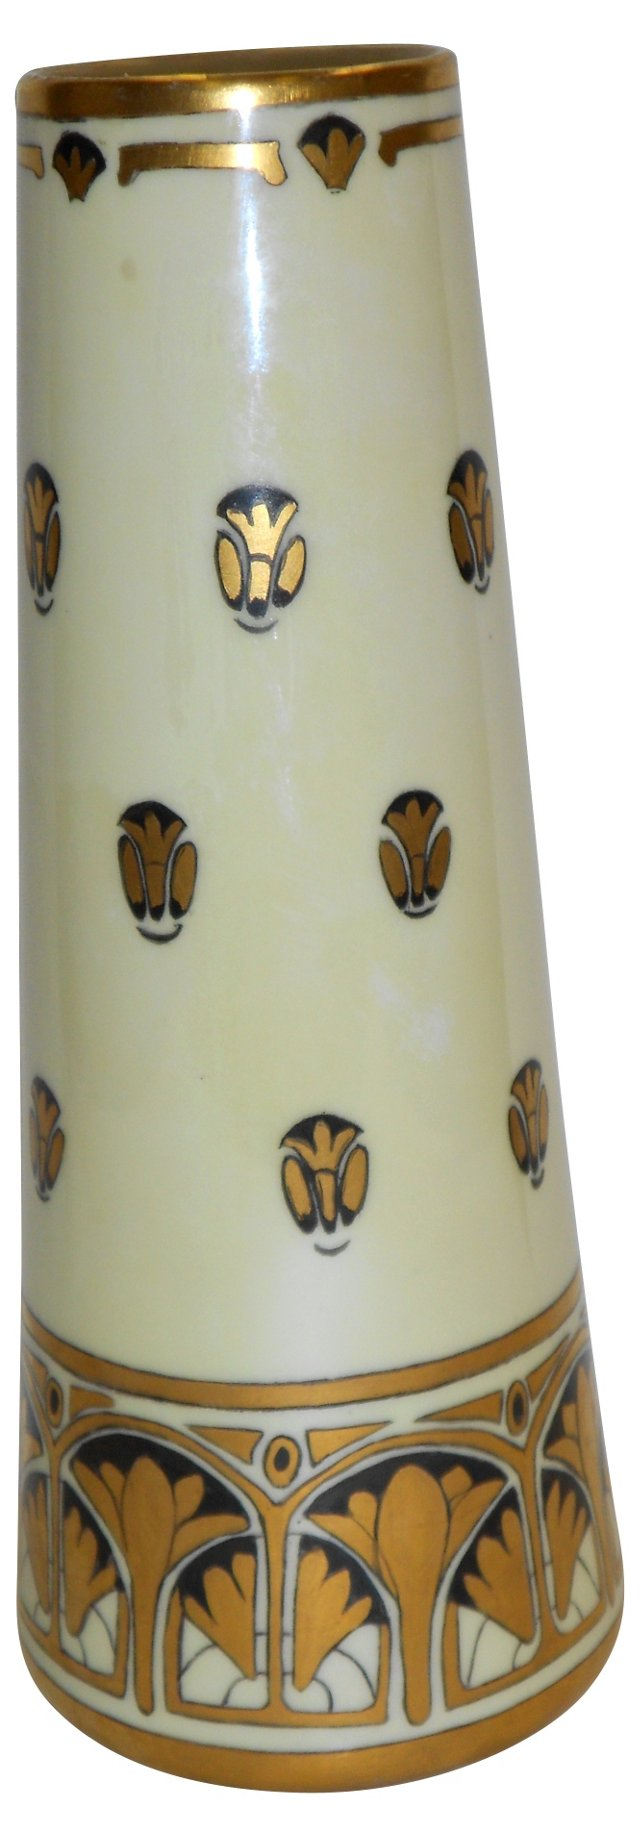 Porcelain Hand-Painted Vase